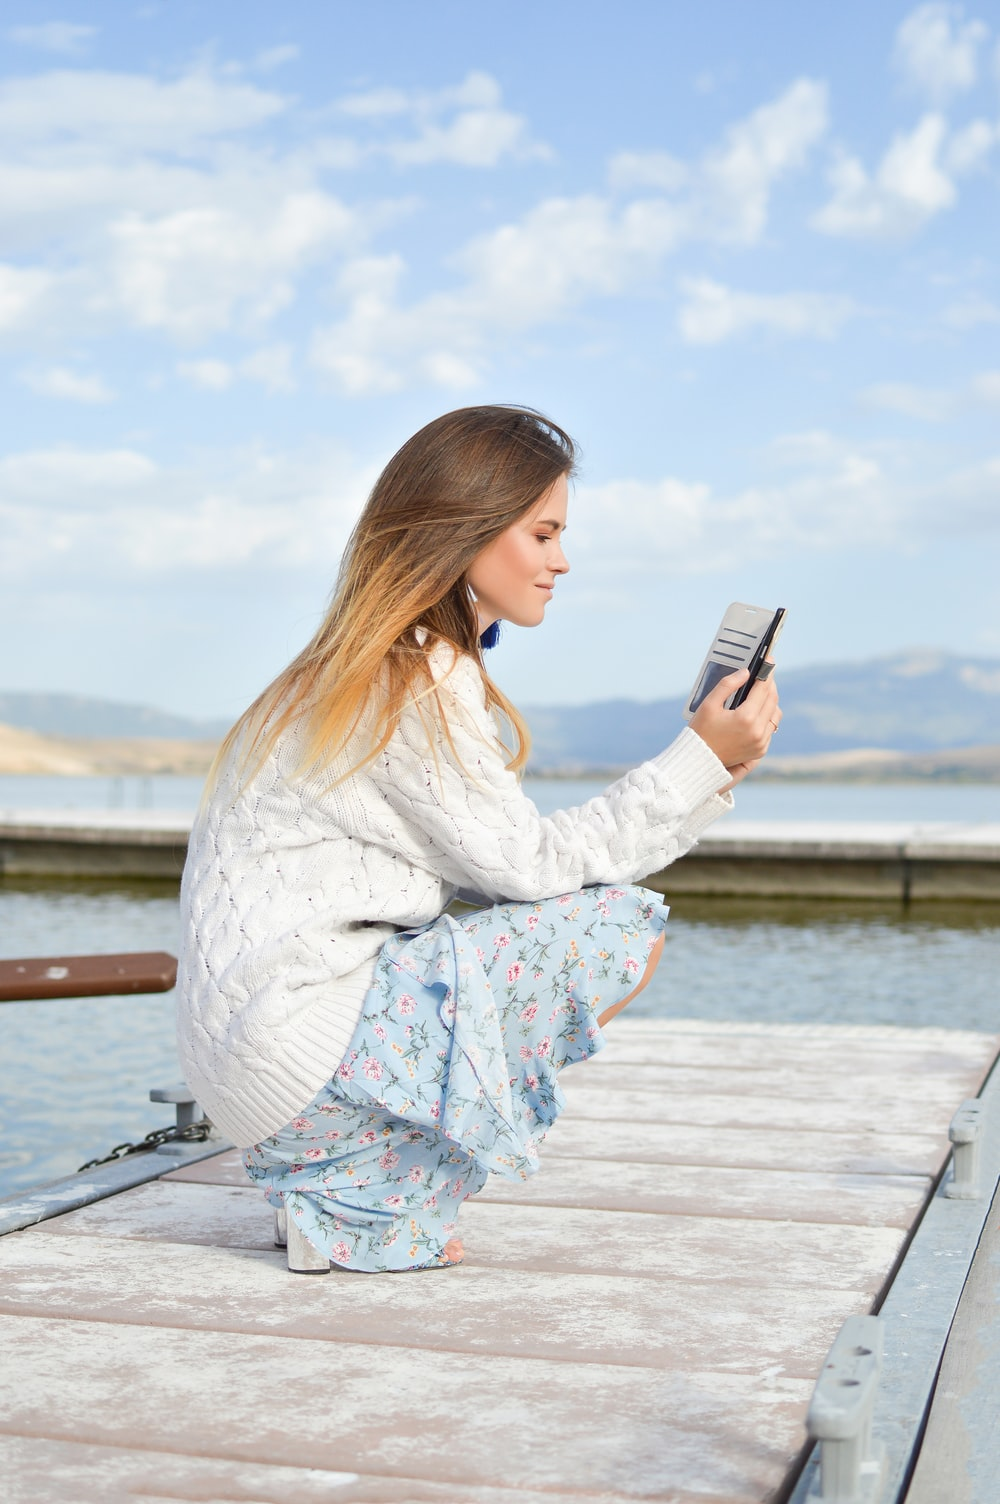 woman using smartphone while sitting of dock during daytime